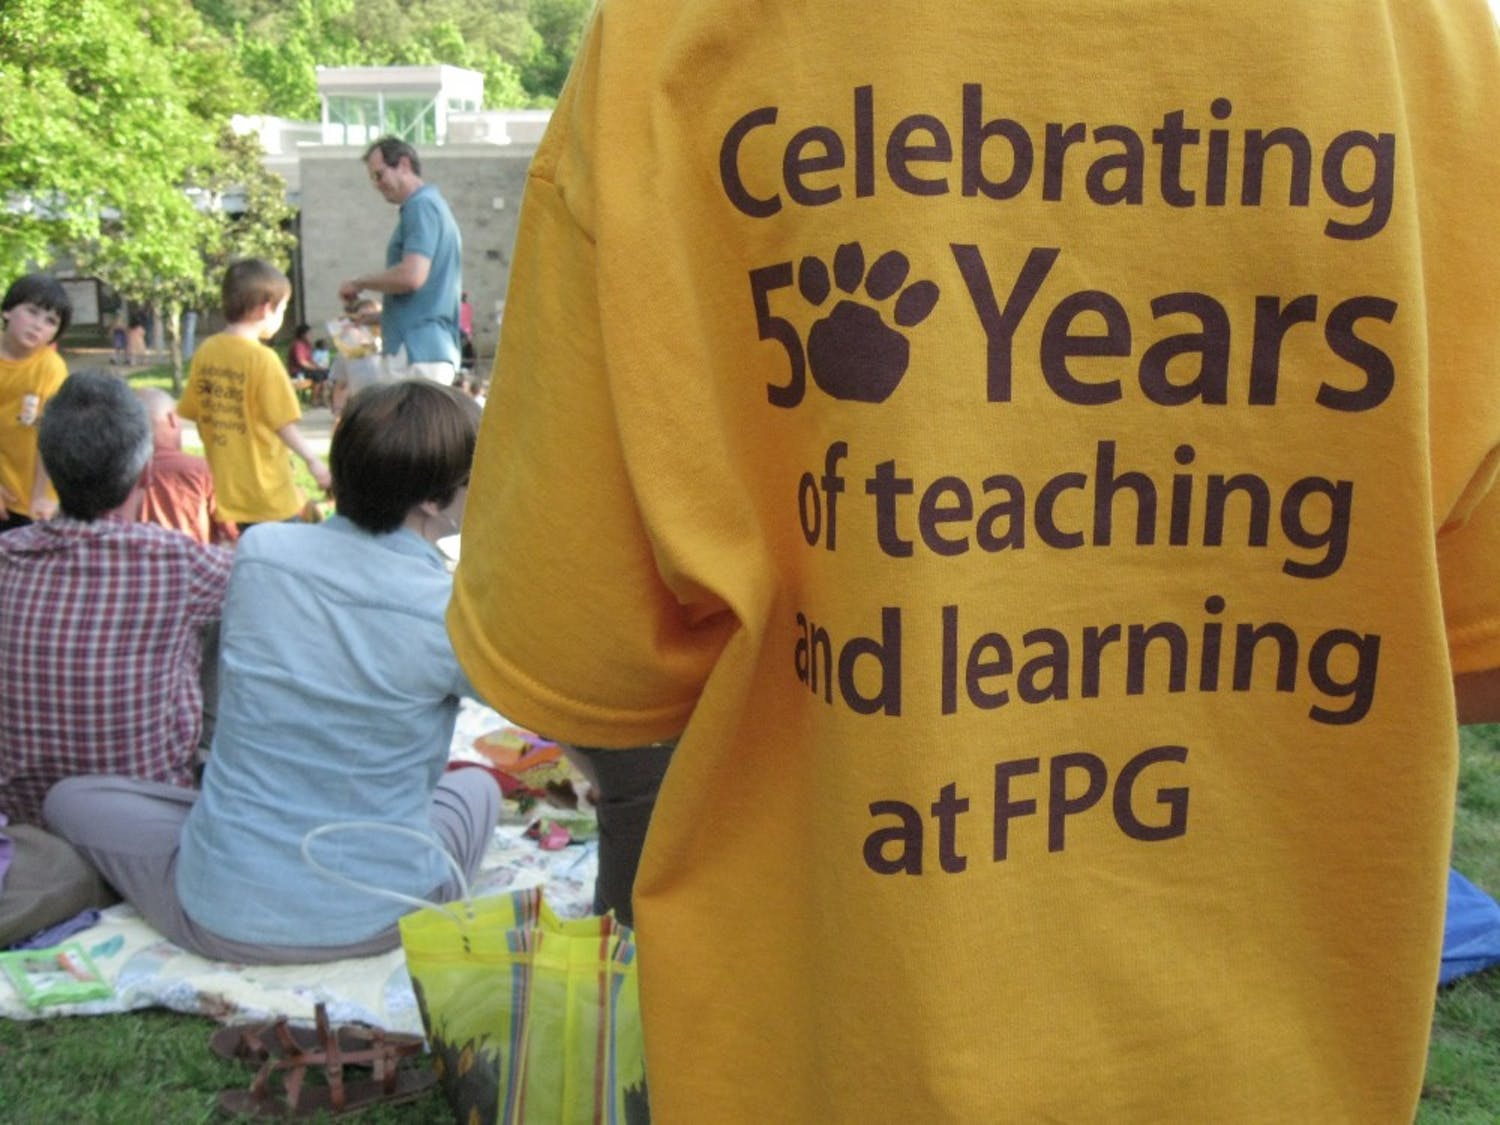 FPG staff distributed t-shirts Thursday night as part of the school's 50th anniversary celebration.